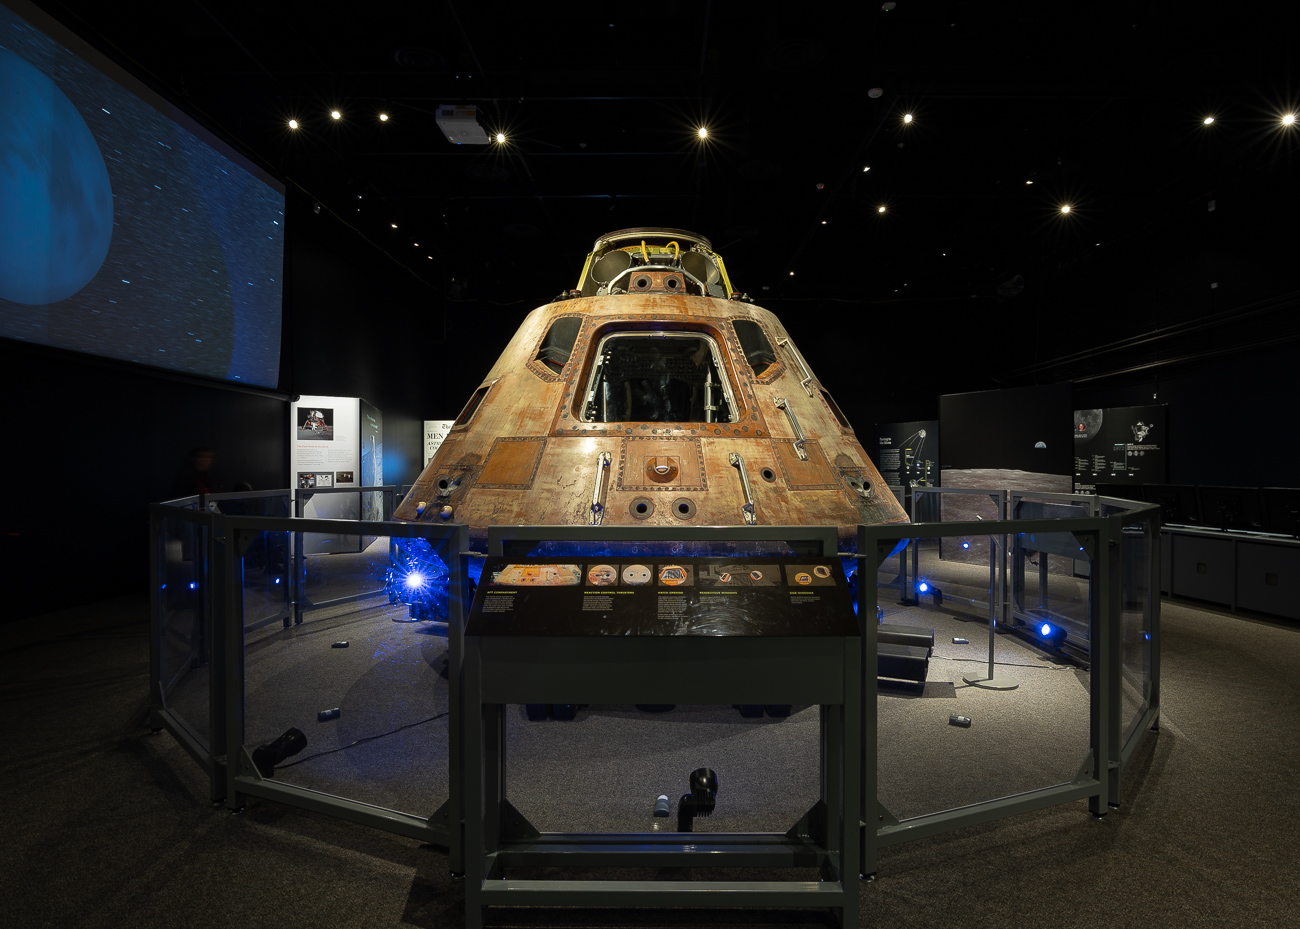 The Apollo 11 command module Columbia is the most notable piece of the collection. This piece of equipment safely housed all three astronauts during takeoff, travel, and reentry, and was recovered from the Pacific Ocean along with Armstrong, Aldrin, and Collins when they returned to Earth. It hasn't left DC since 1976, but is now part of the traveling Destination Moon exhibition. You can see this extraordinary piece of history at the Cincinnati Museum Center until February 17, 2020. / Image: Phil Armstrong, Cincinnati Refined // Published: 10.2.19